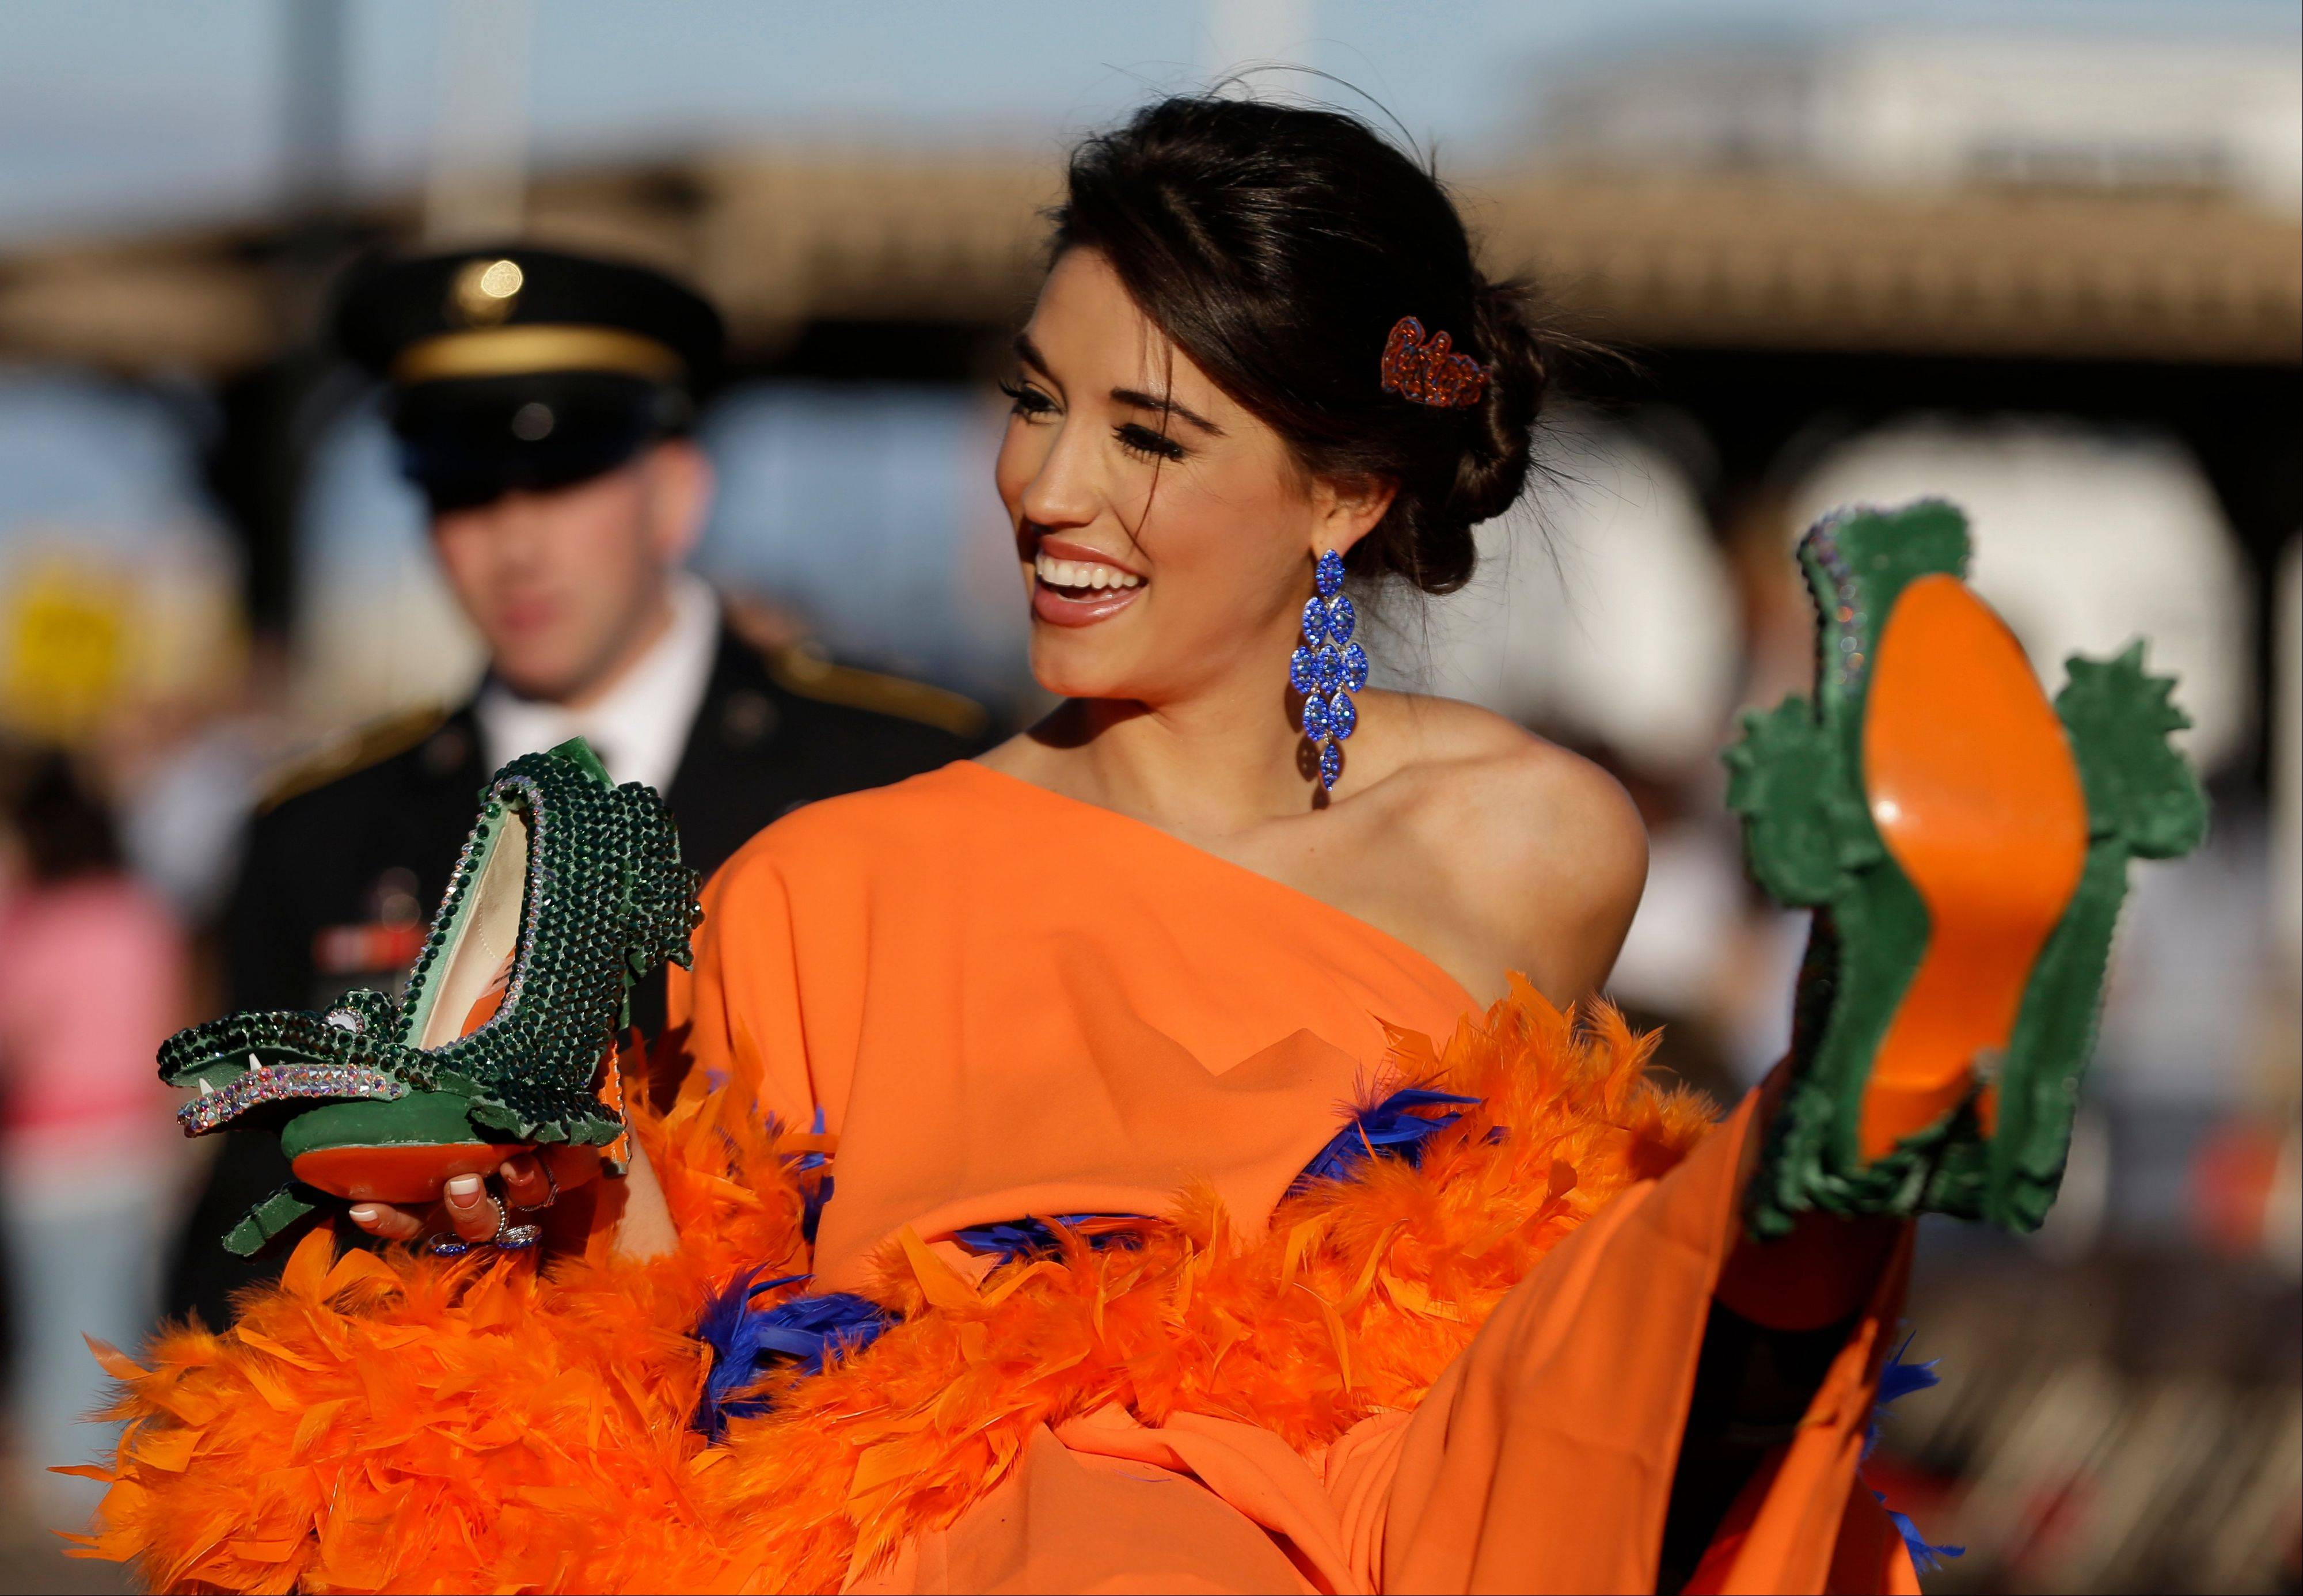 Miss Florida Myrrhanda Jones shows her shoe Saturday during the Miss America Shoe Parade at the Atlantic City boardwalk.